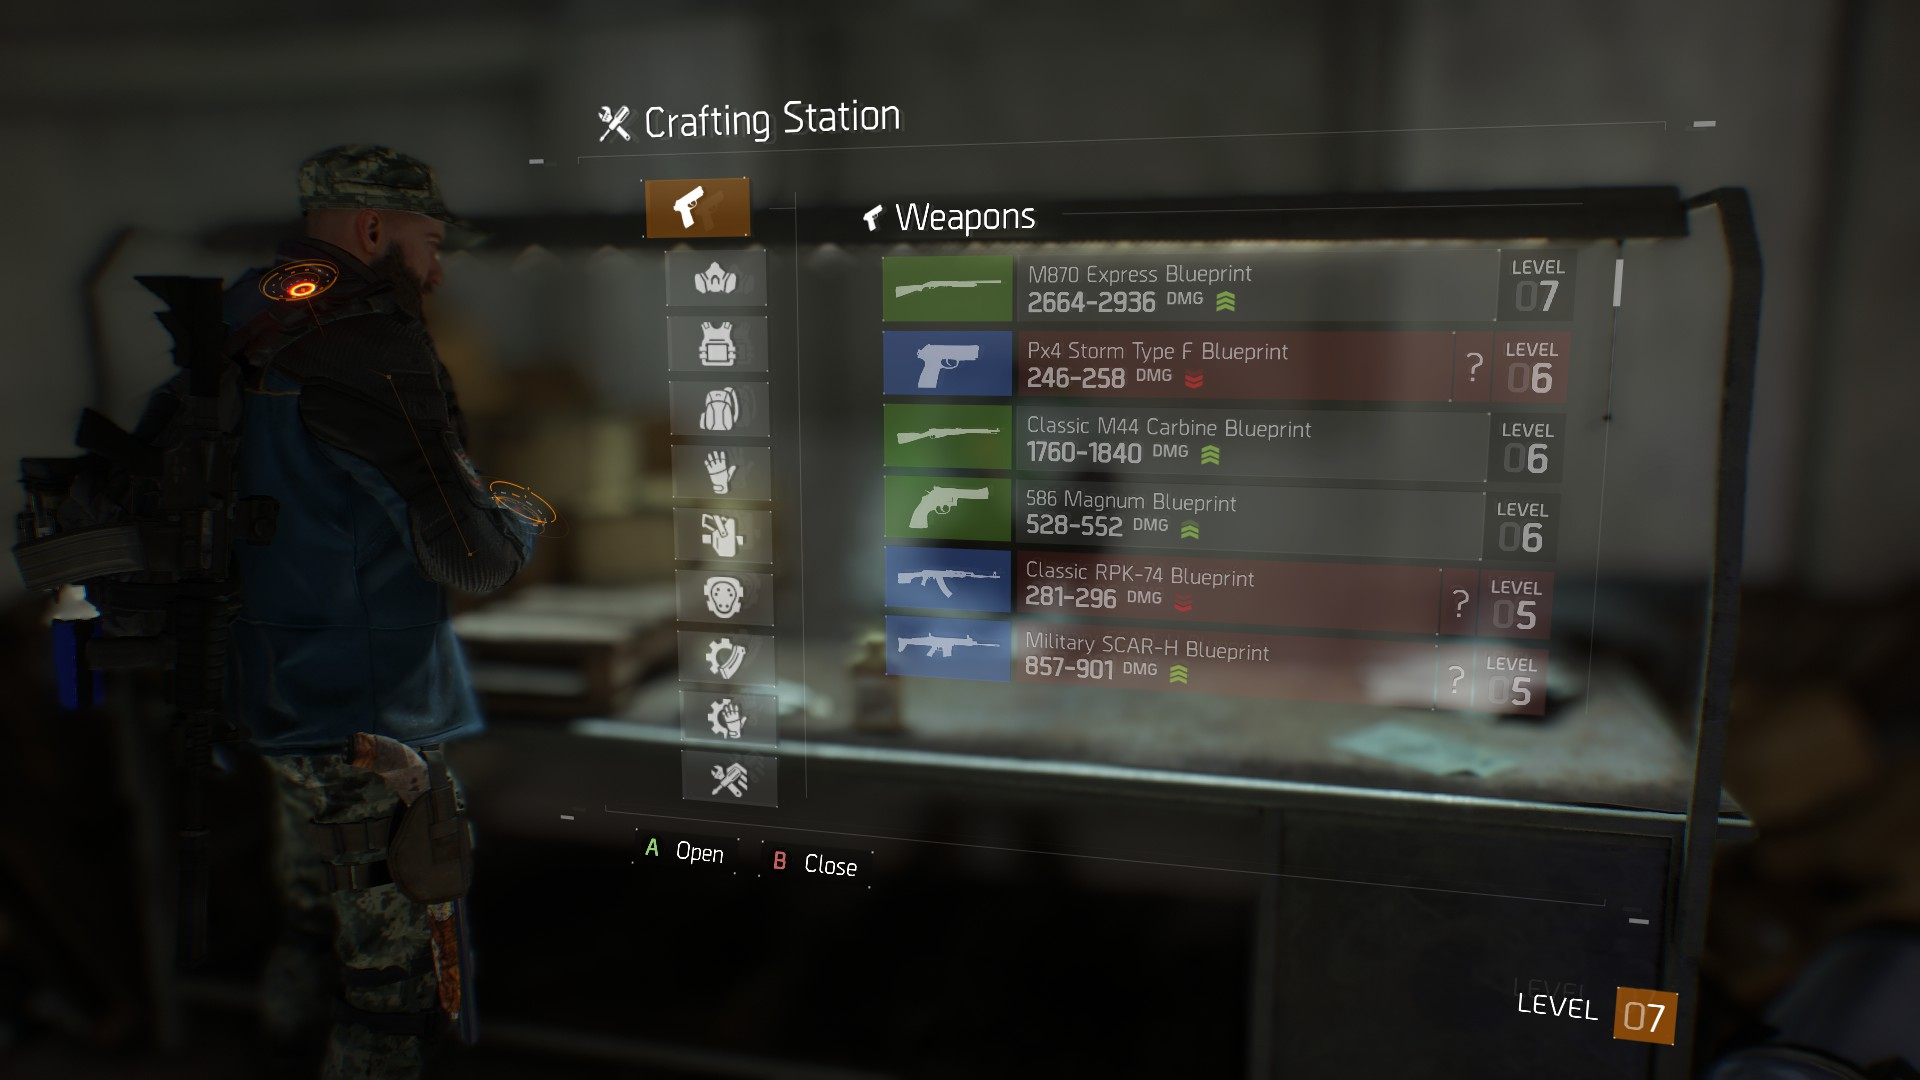 How to Craft Weapons and Gear in The Division | USgamer